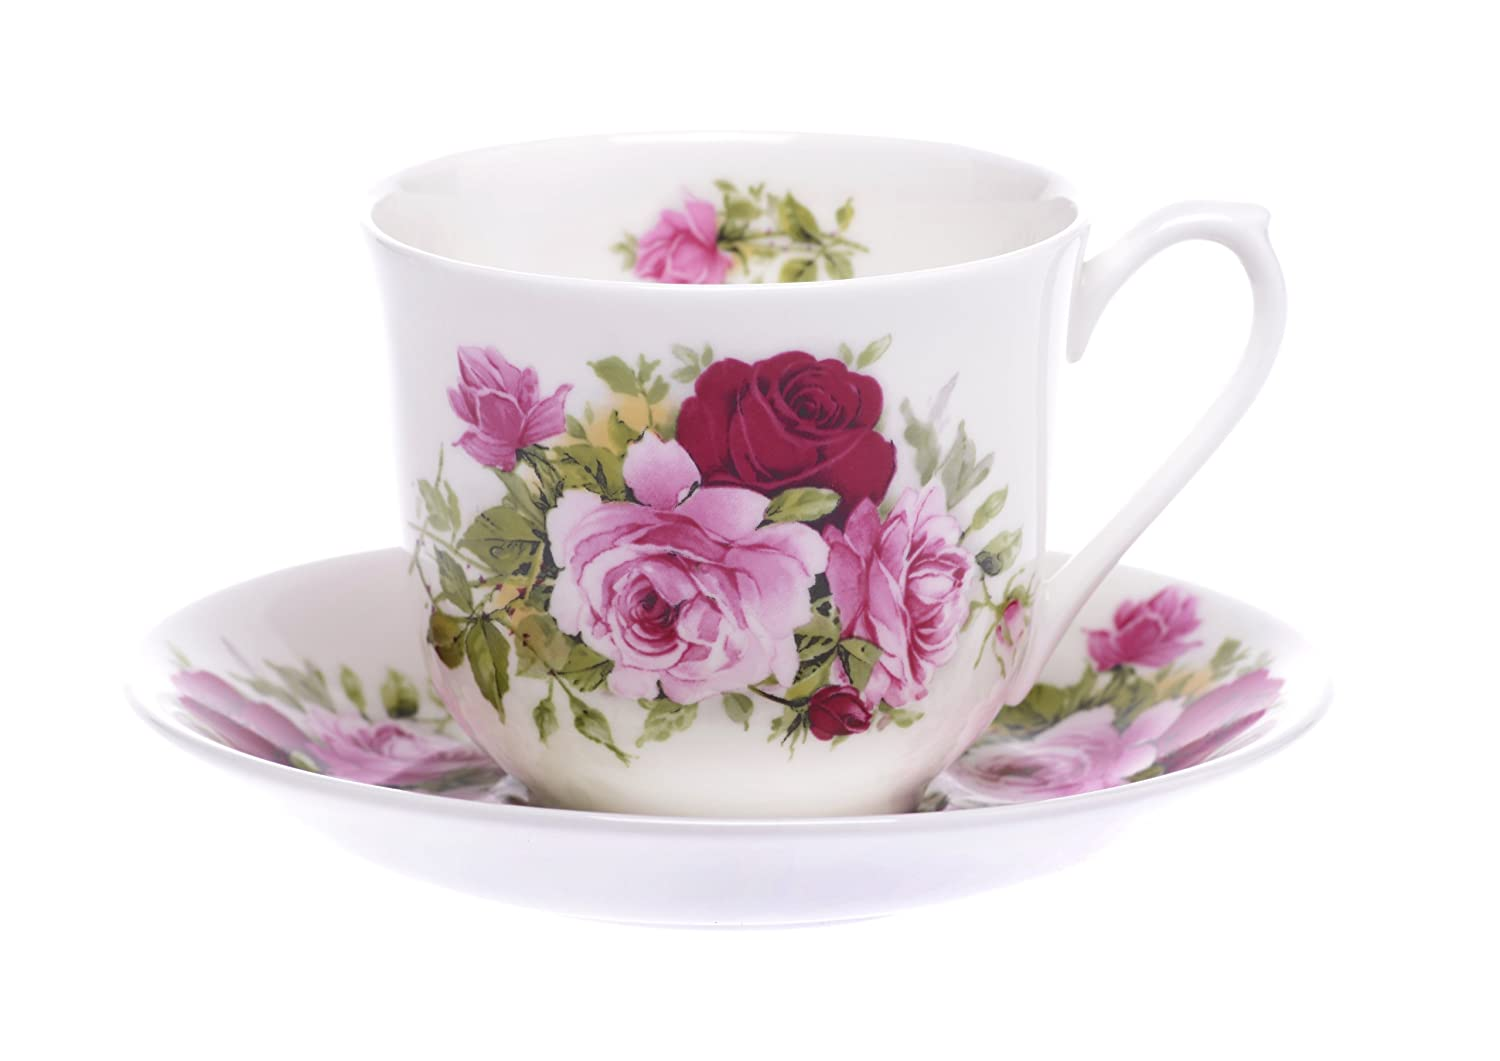 (SET OF 2) Bone China 8 FL OZ Summertime Pink Rose Flowers Cup and Saucer Kirsty Jayne China- Hand decorated in the Potteries, Staffordshire, England.